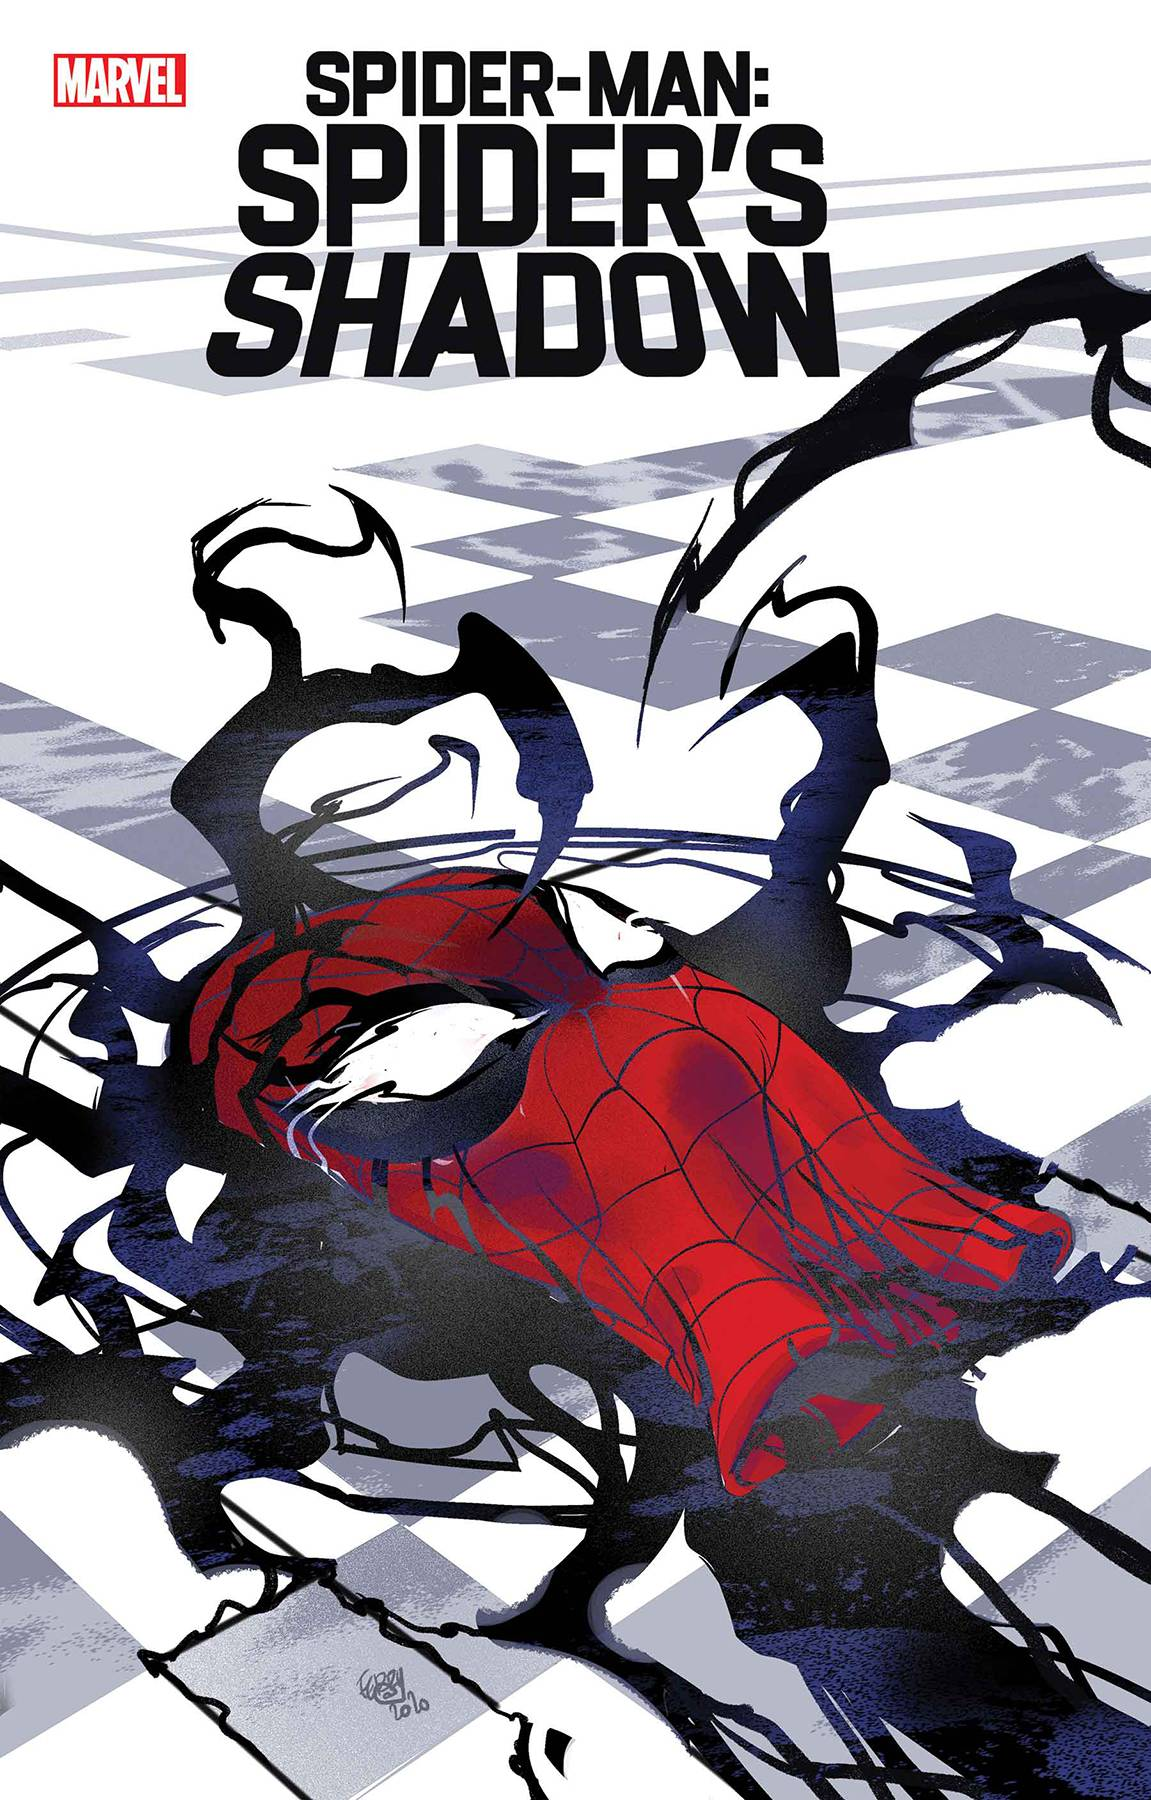 SPIDER-MAN SPIDERS SHADOW #1 (OF 4) FERRY VAR